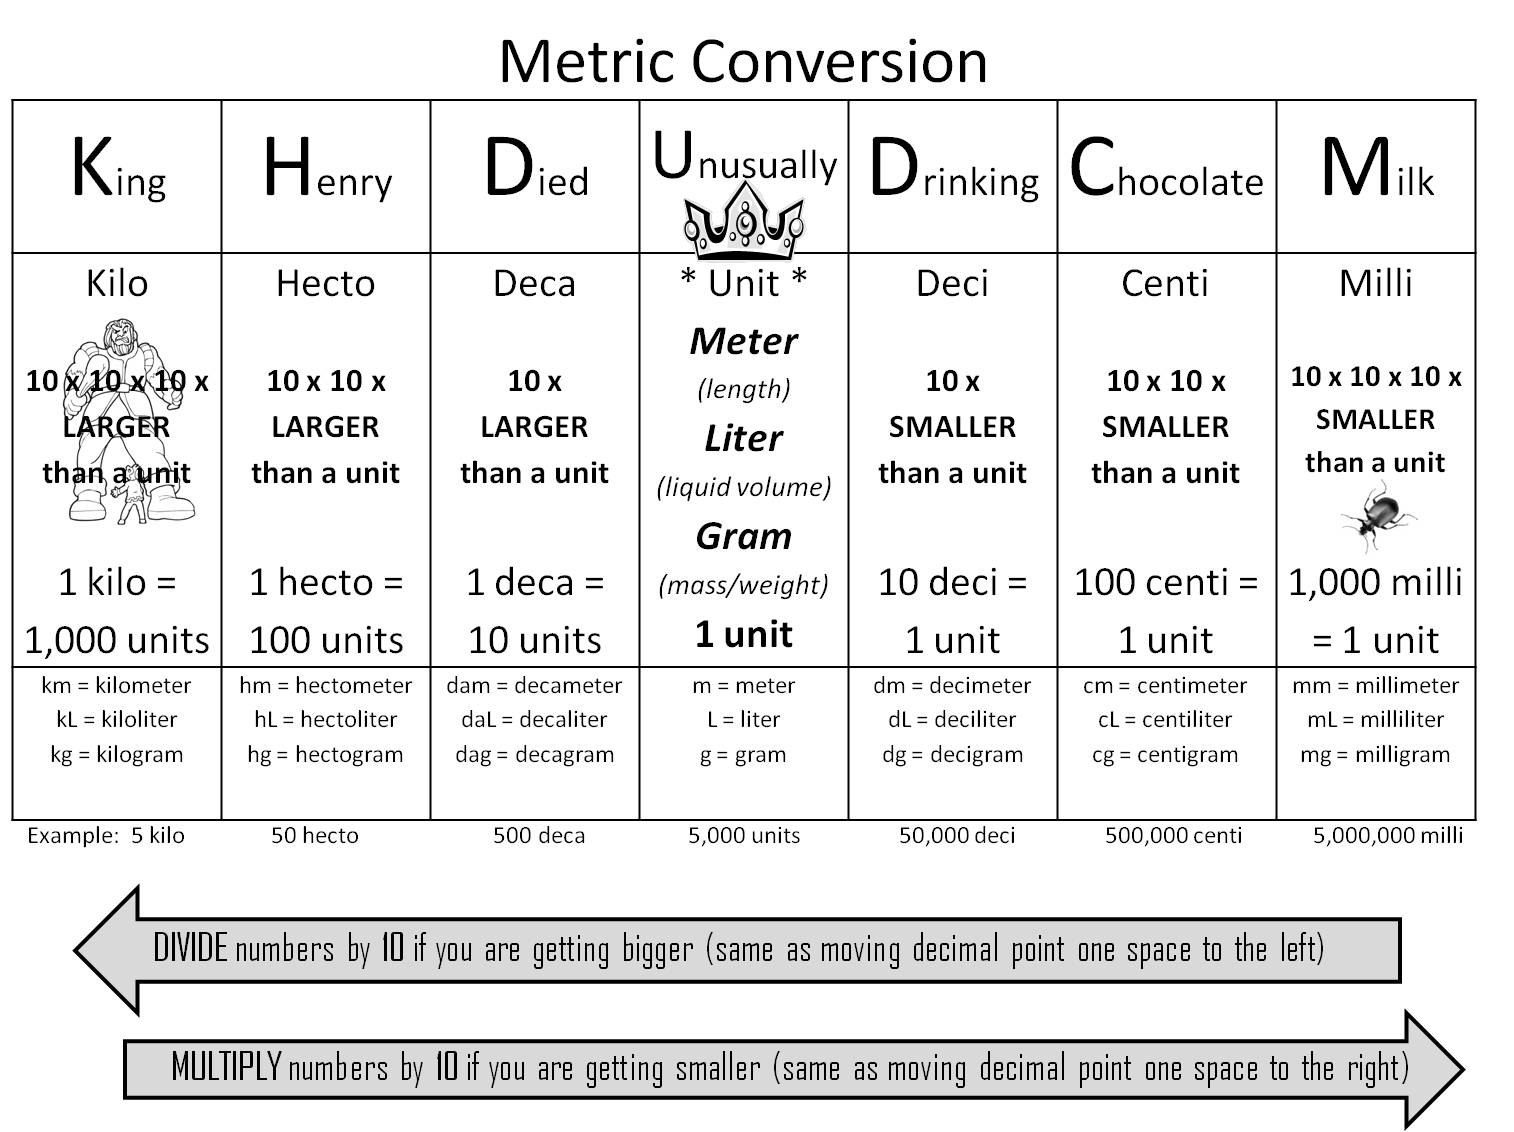 Strong armor math metric conversion trick math metric conversion trick nvjuhfo Gallery